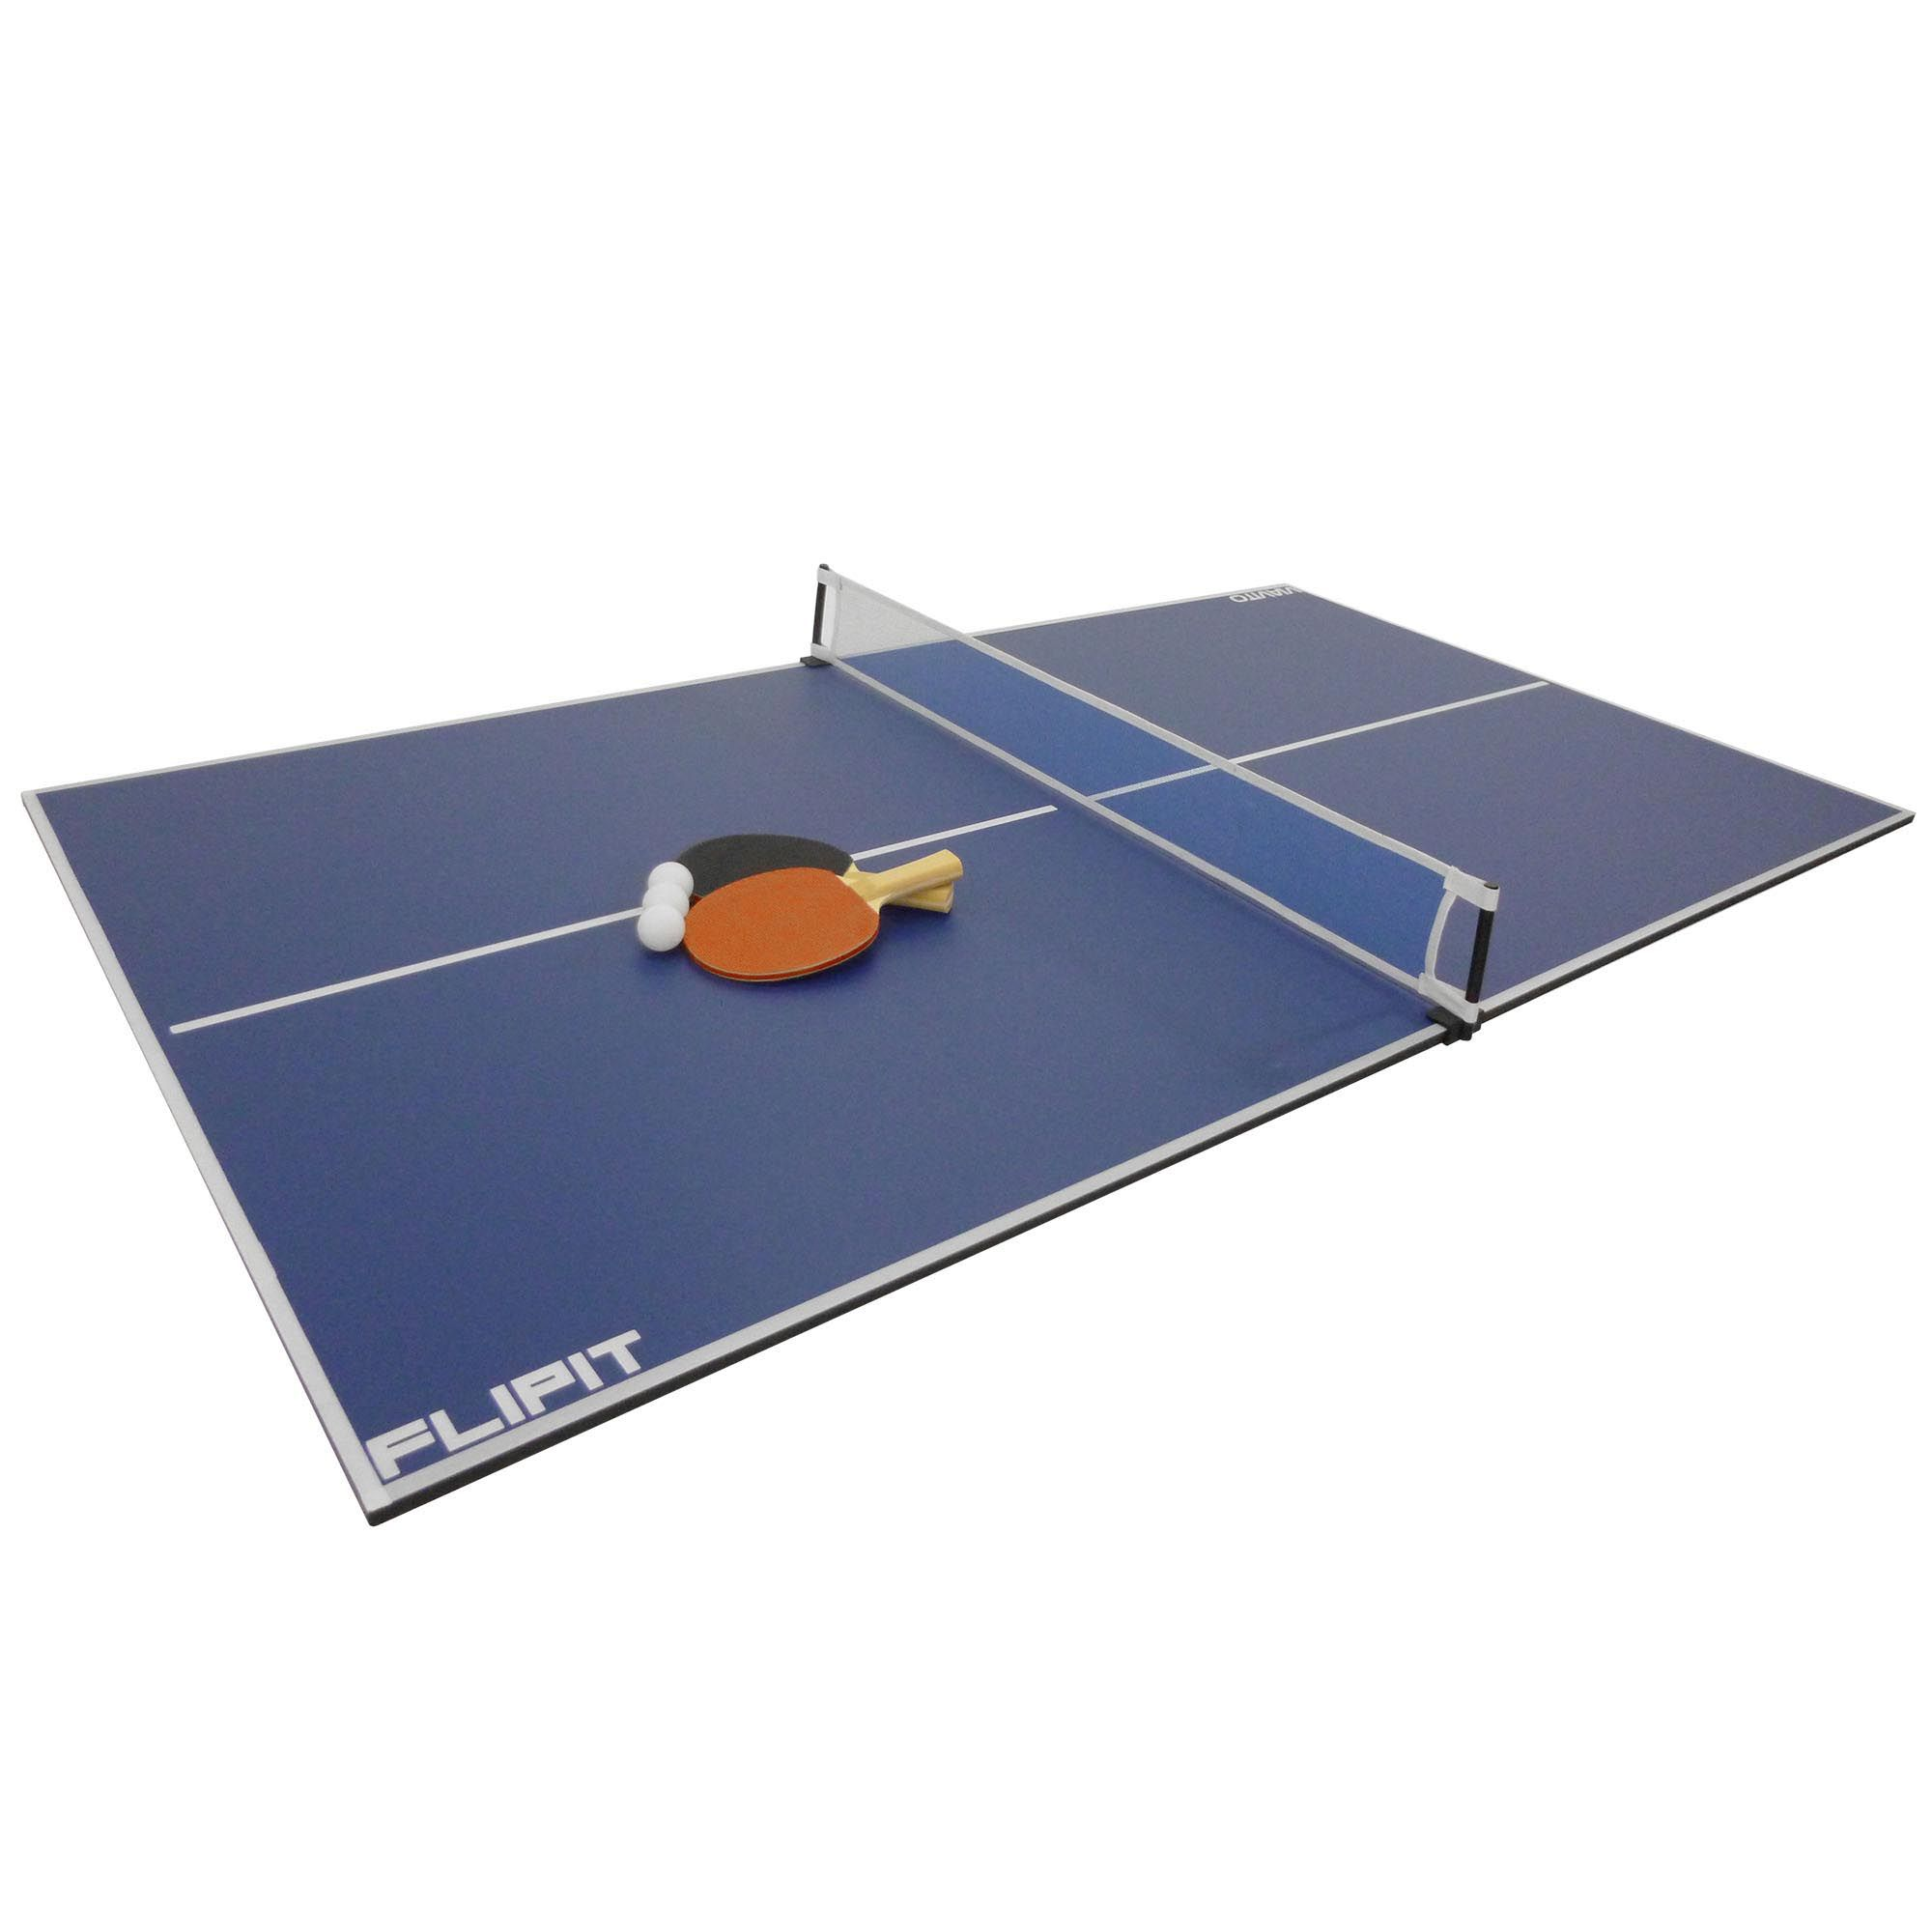 Viavito flipit 6ft table tennis top for Table tennis